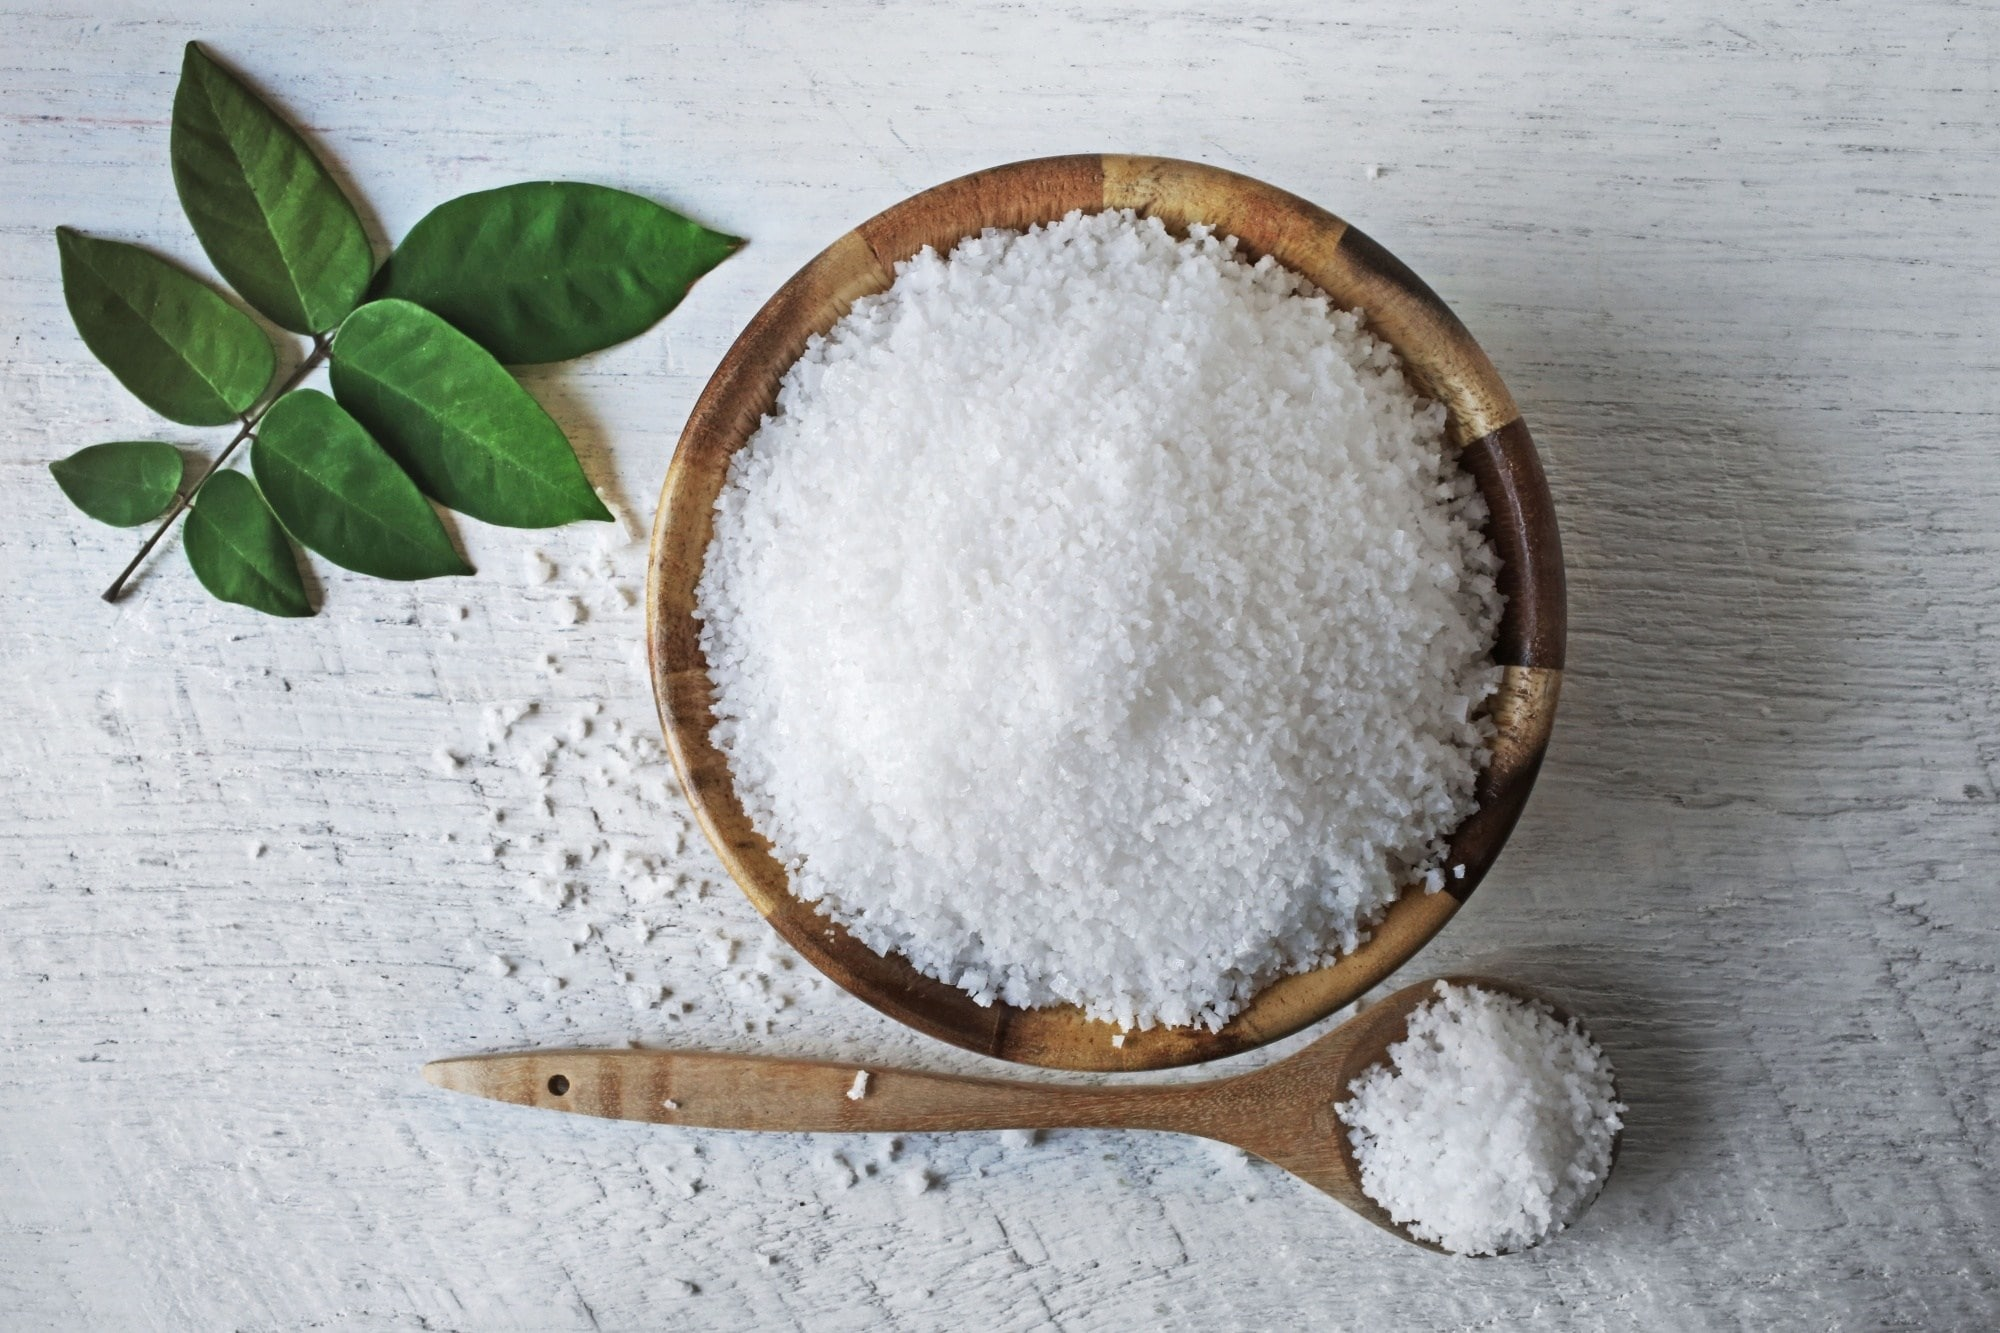 Natural dandruff remedies: a bowl and spoon full of salt